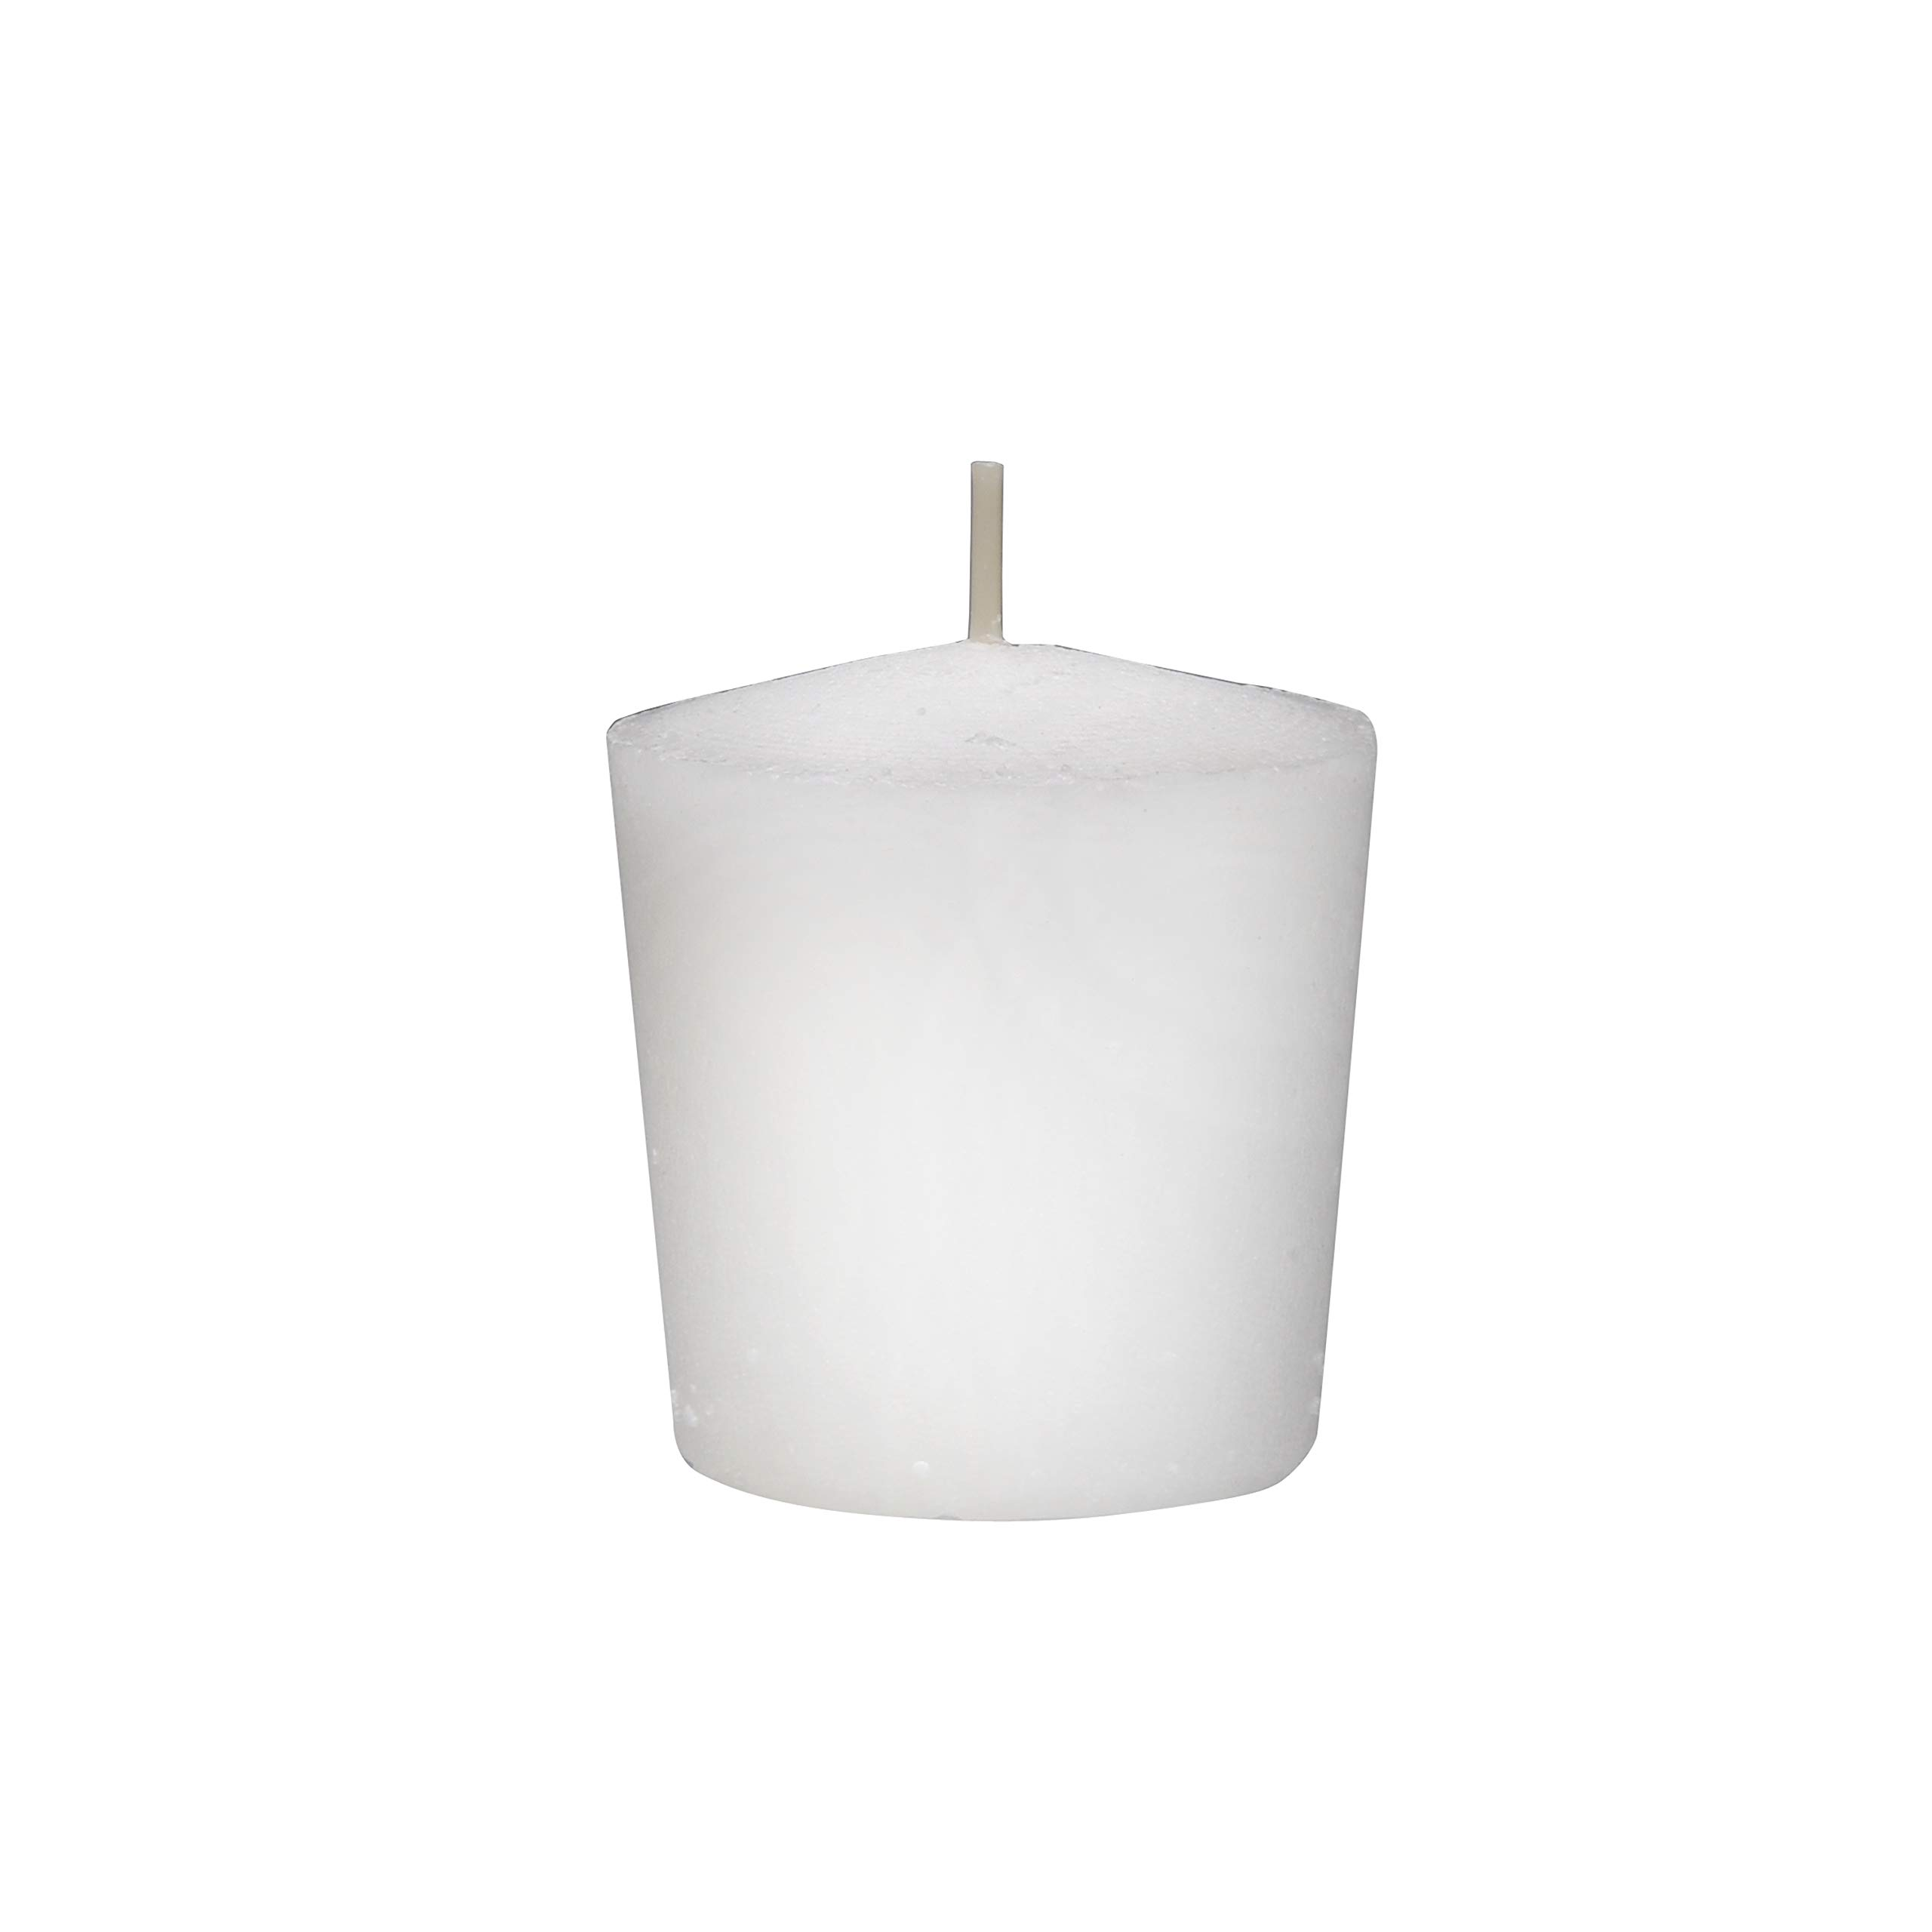 Hollowick Select Wax 15 Hour Tapered Food Warmer Votive Wax Candle (144/case)